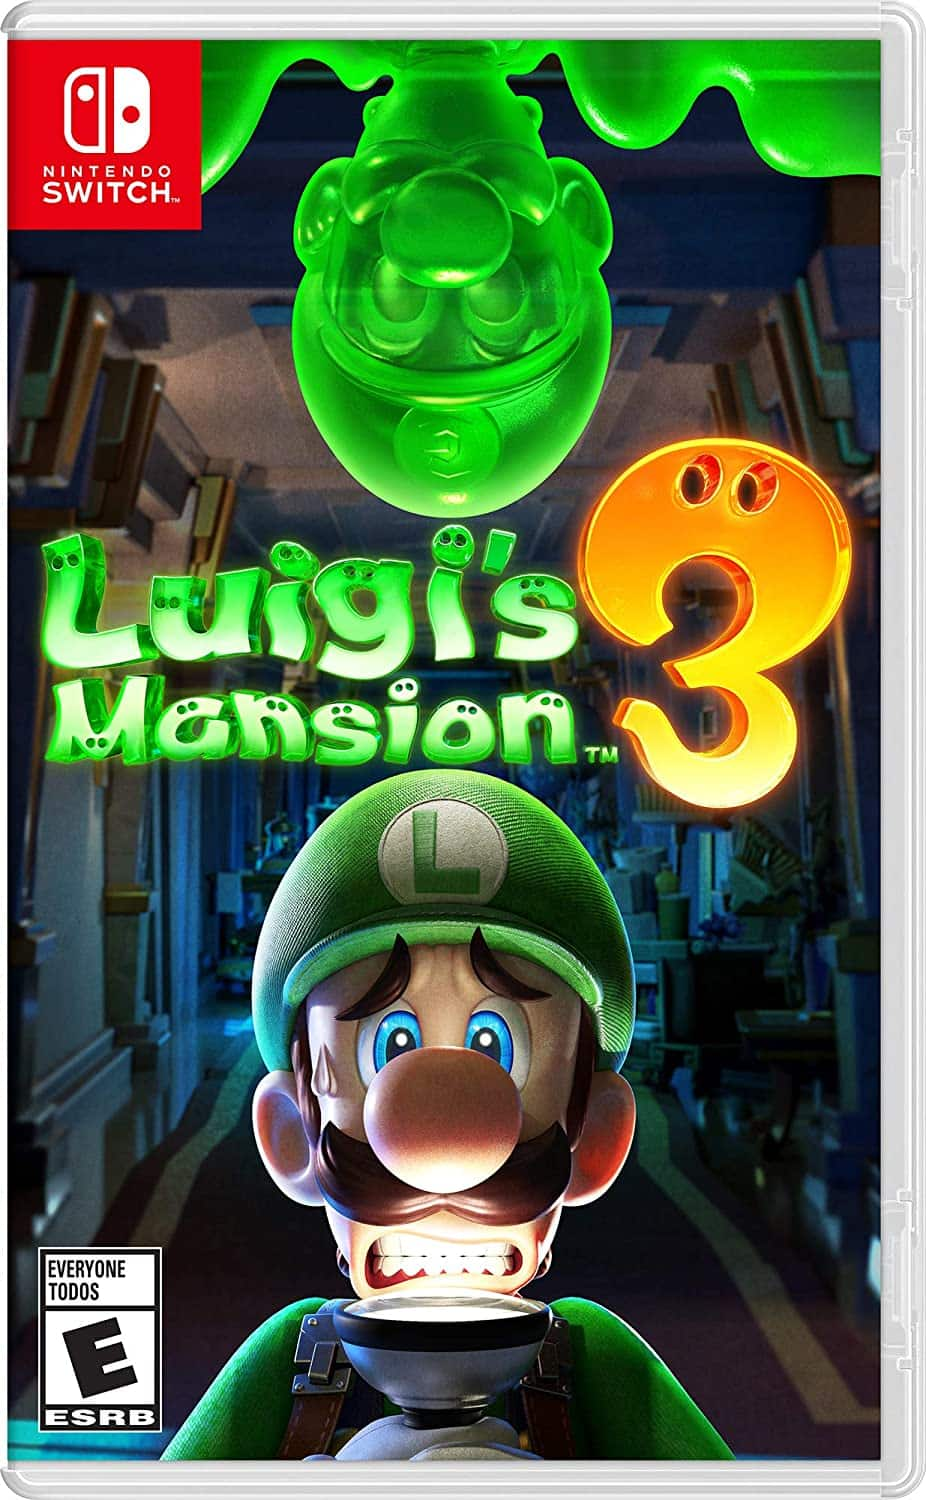 Luigi's Mansion 3, Mario Kart 8 Deluxe or Paper Mario: The Origami King (Nintendo Switch) + $25 Dell eGift Card for $59.99 + Free Shipping *Active